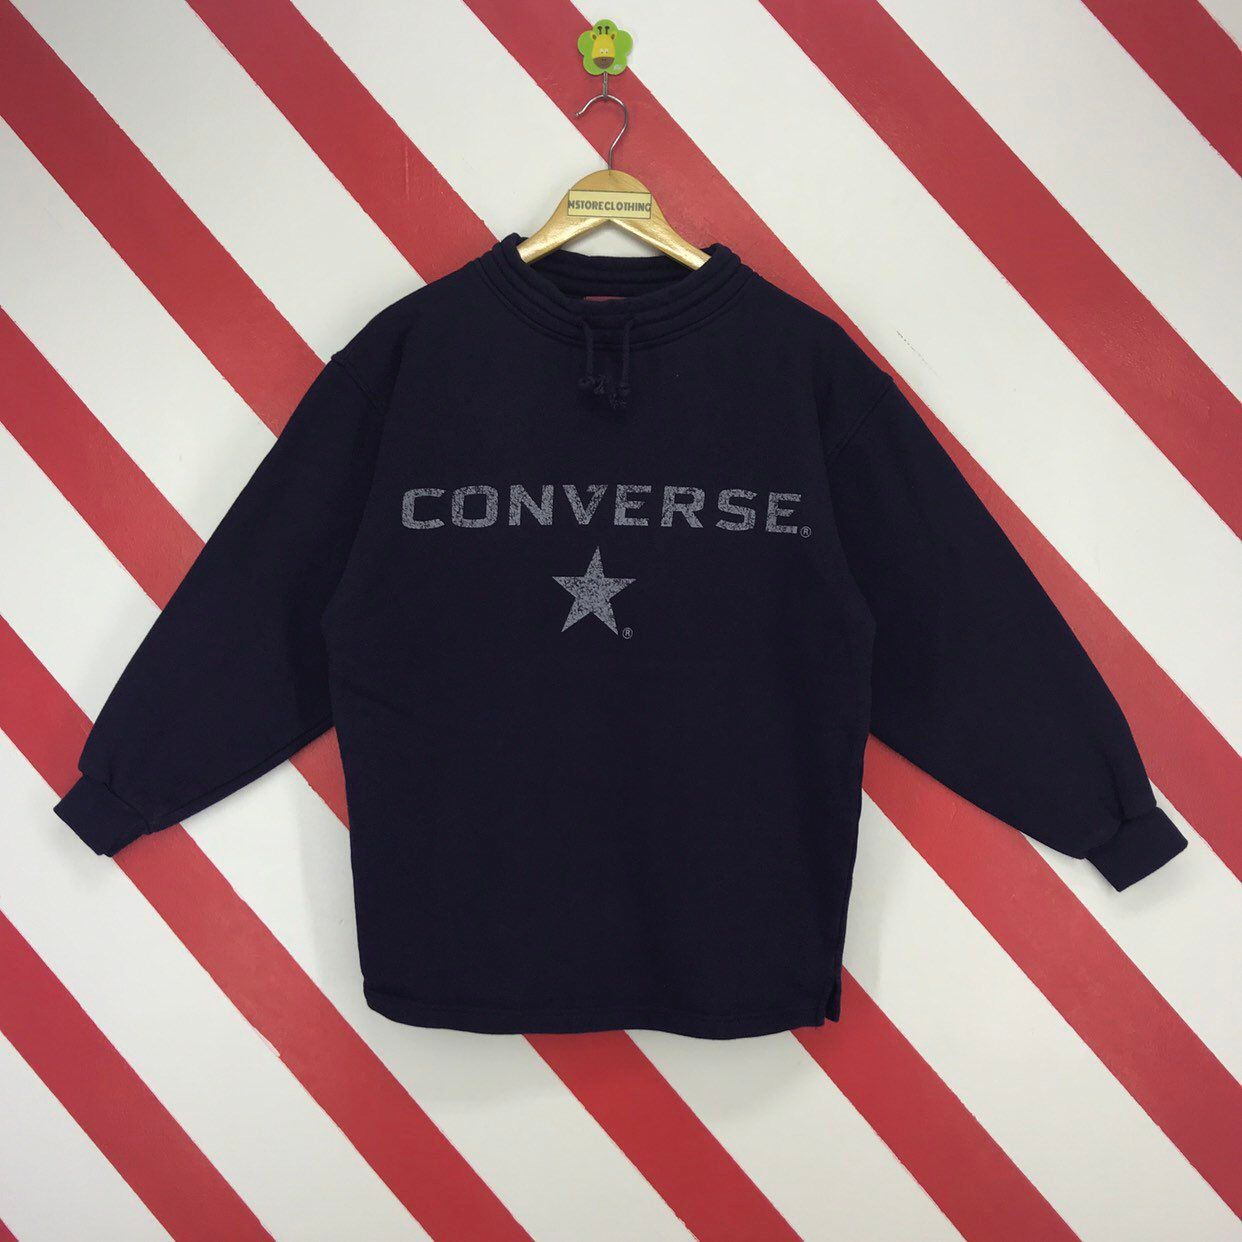 32e2a029793a ... shop  Vintage 90s Converse Sweatshirt Converse All Star USA Sweater  Crewneck Converse Streetwear Jumper Big Logo Printed Navy Blue Size Medium   clothing ...